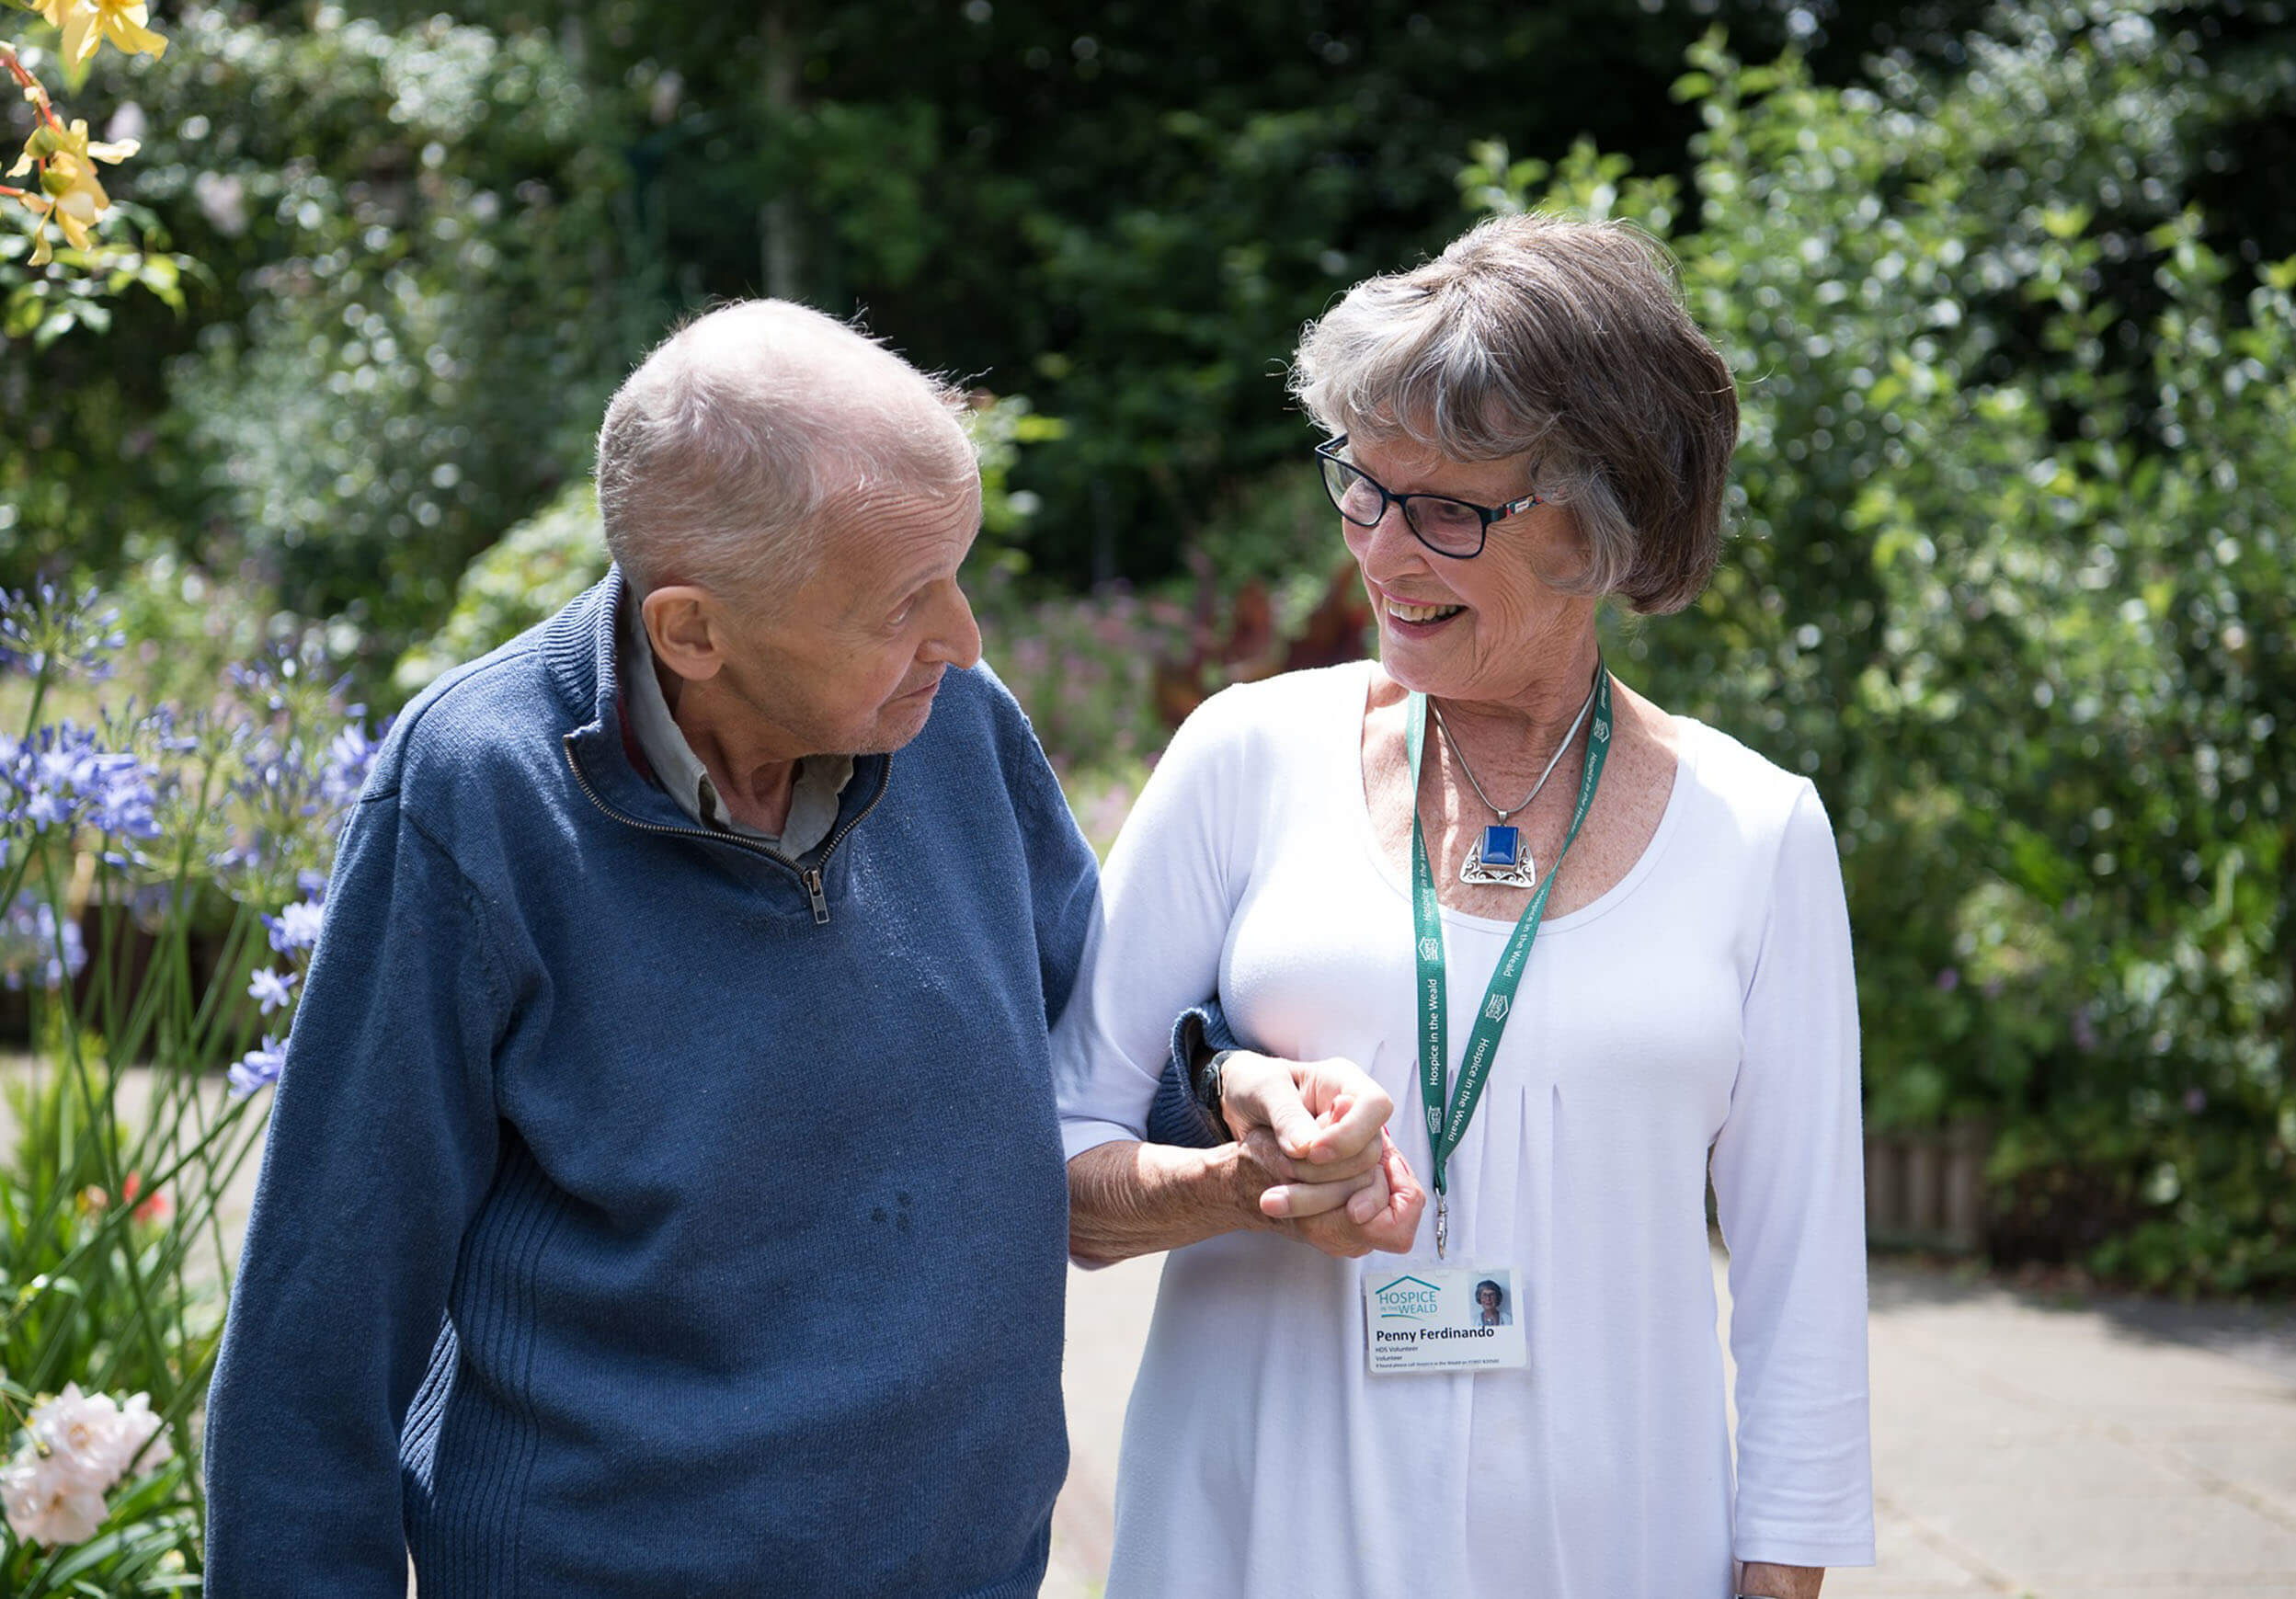 A hospice patient and careworker